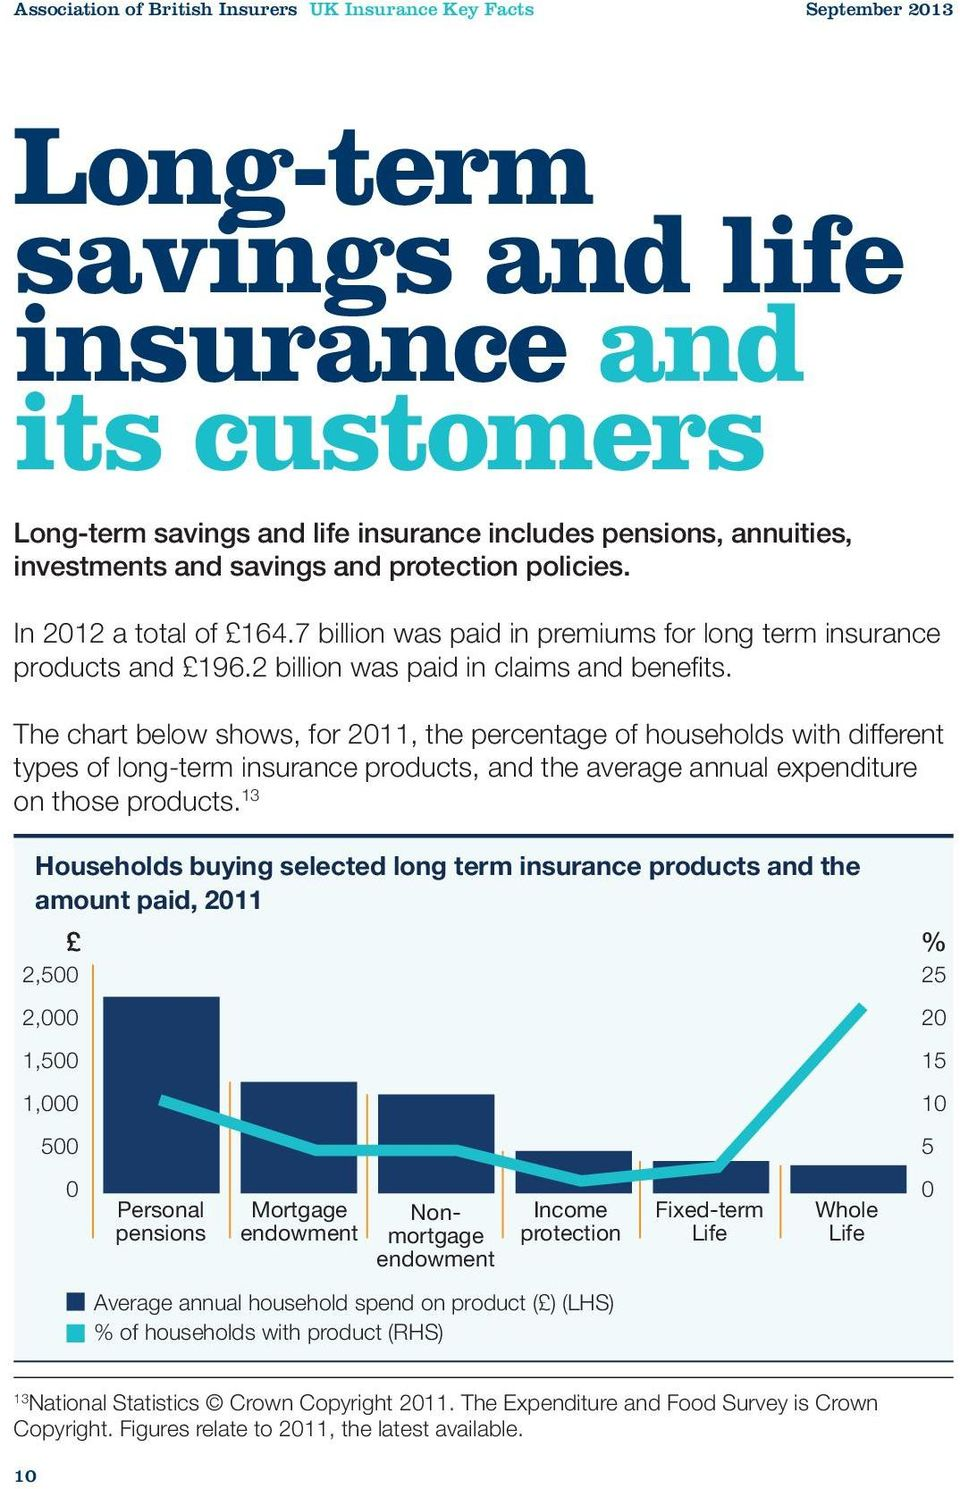 The chart below shows, for 2011, the percentage of households with different types of long-term insurance products, and the average annual expenditure on those products.